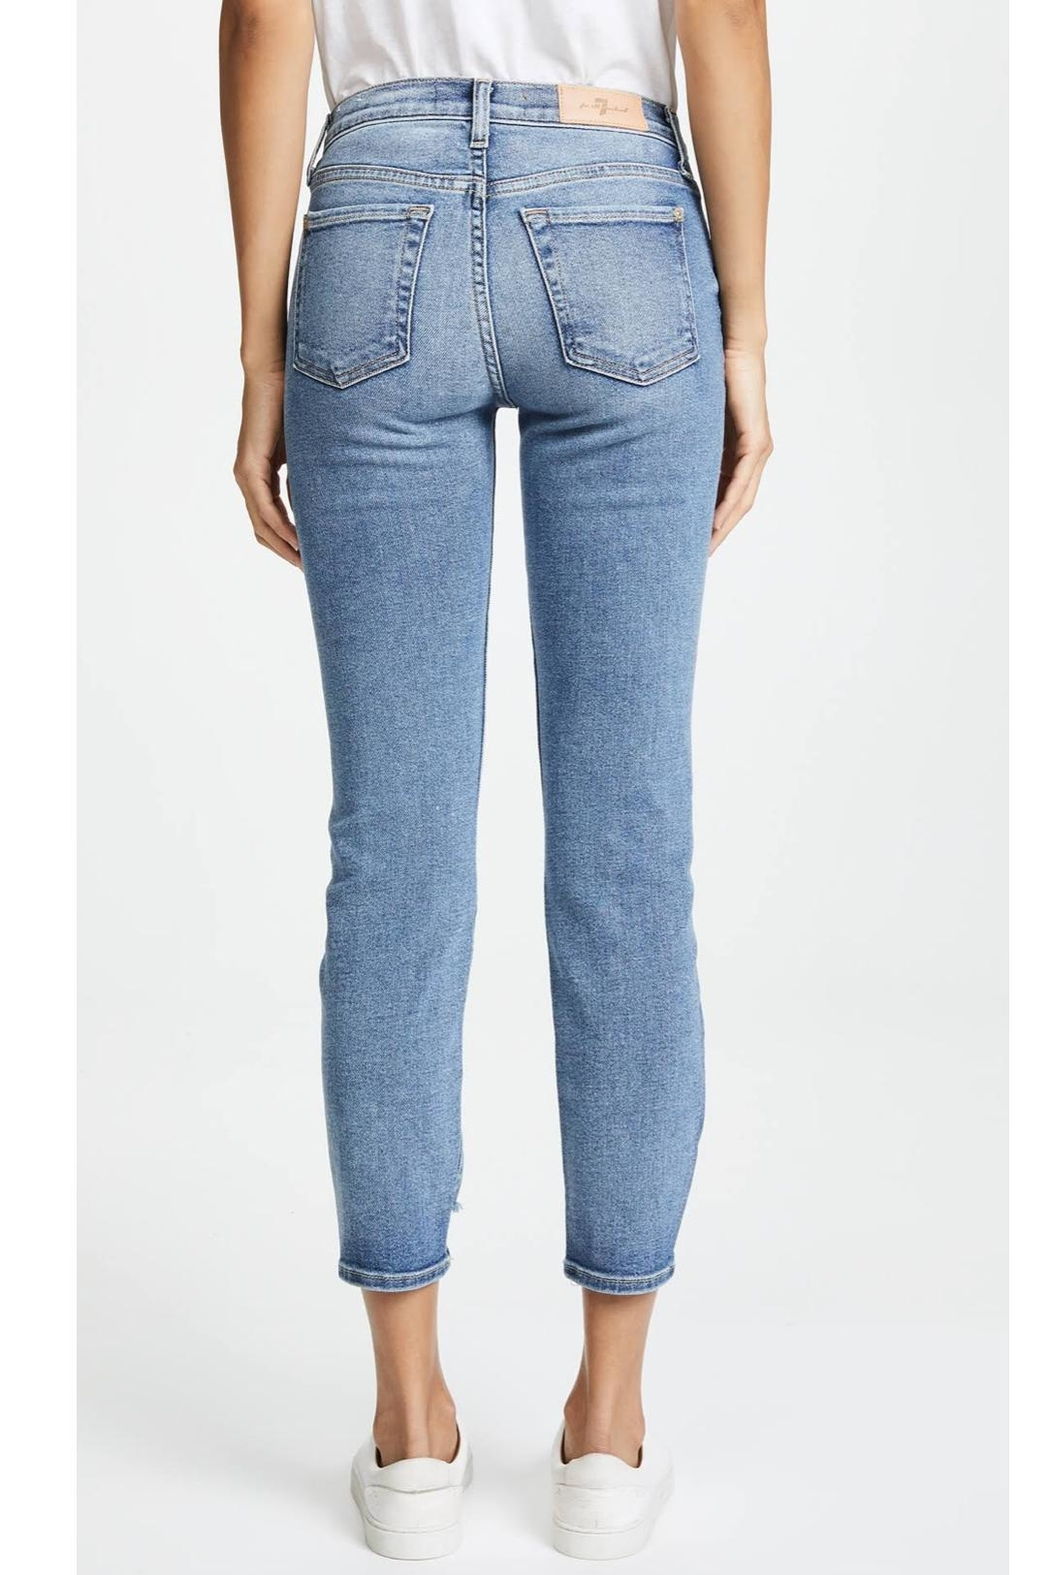 7 For all Mankind Roxanne Ankle Skinny - Front Full Image